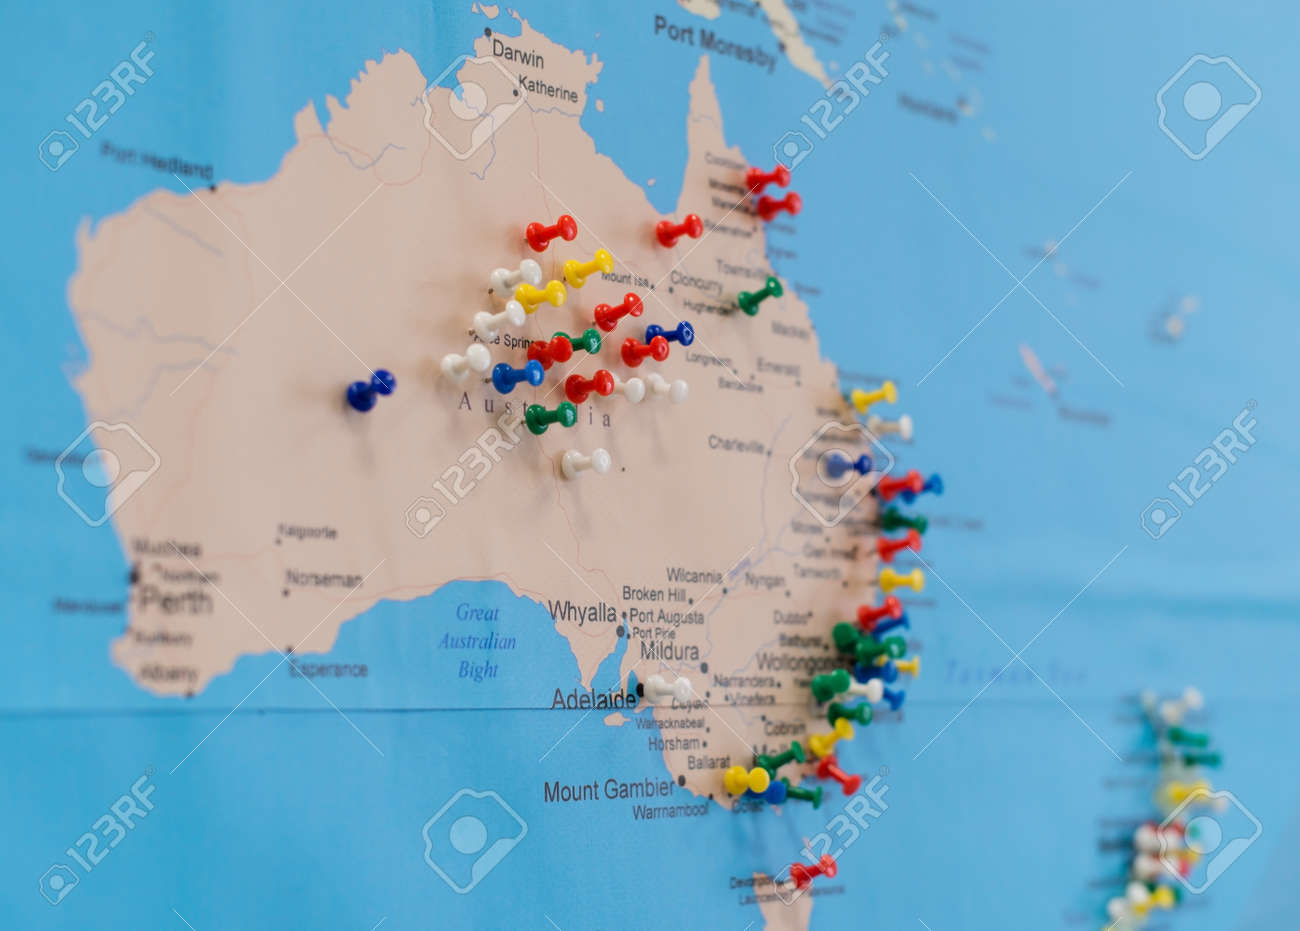 Buttons On Australia On The World Map Soft Focus Stock Photo